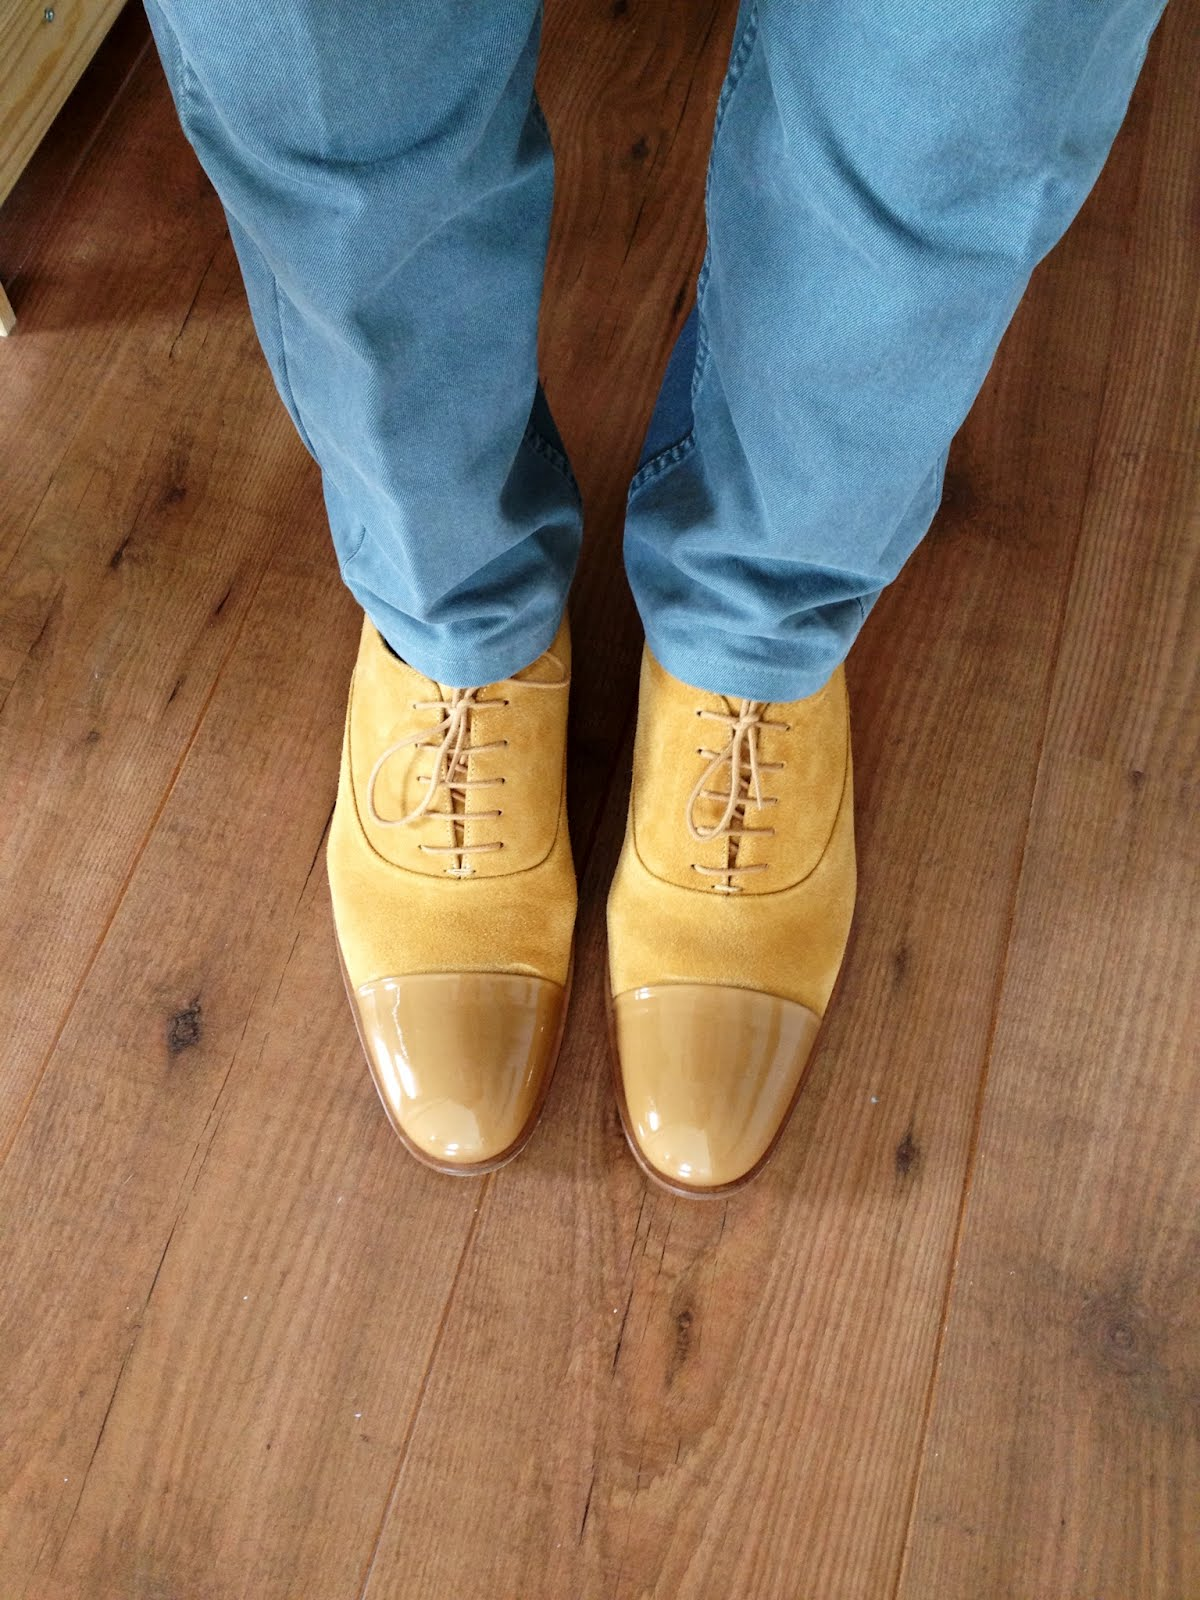 00o00 menswear london blog mr hare capote shoes london collections